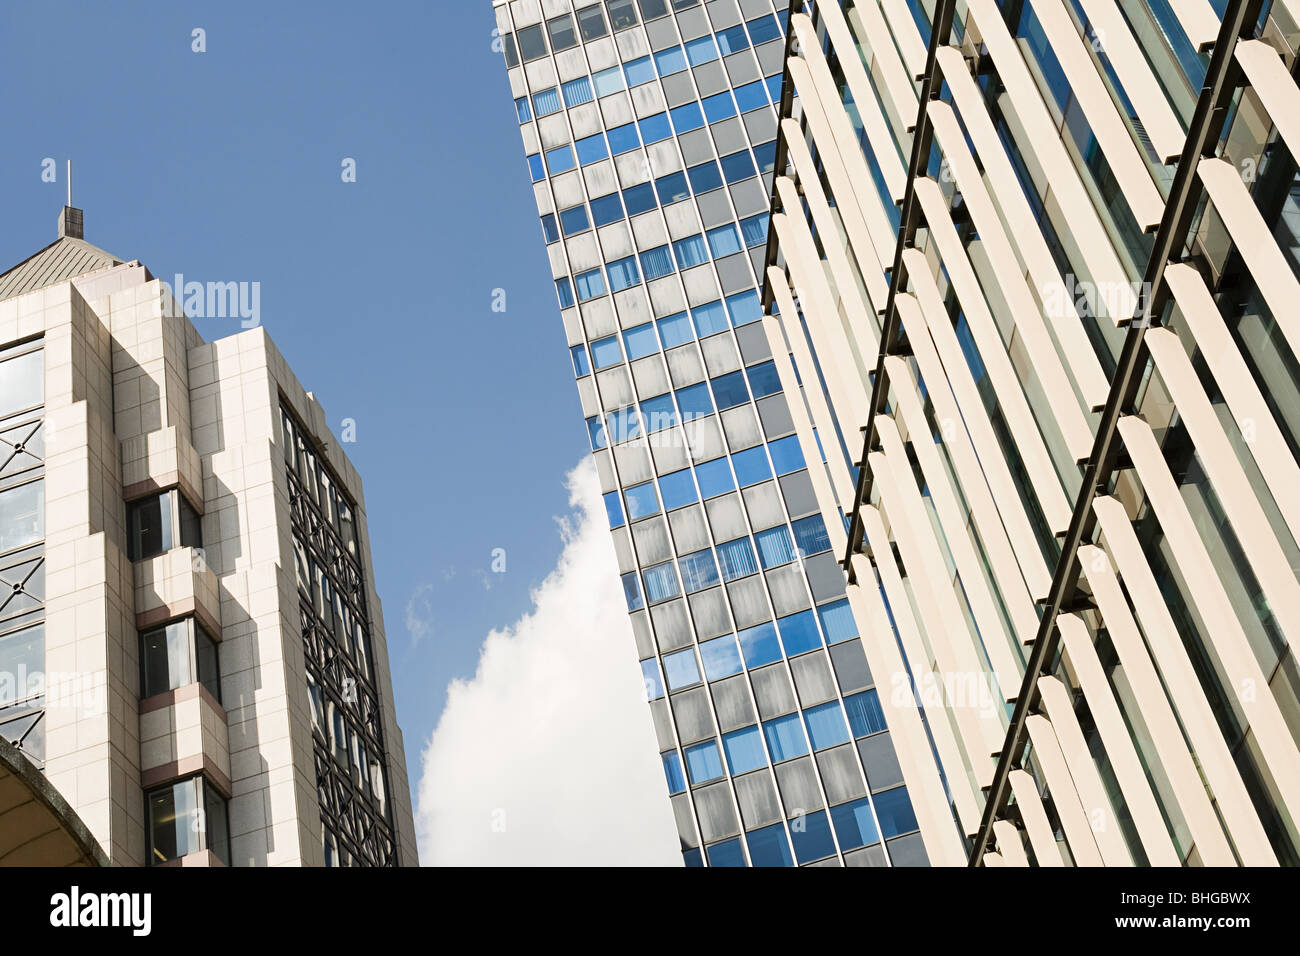 Low angle view of office buildings - Stock Image